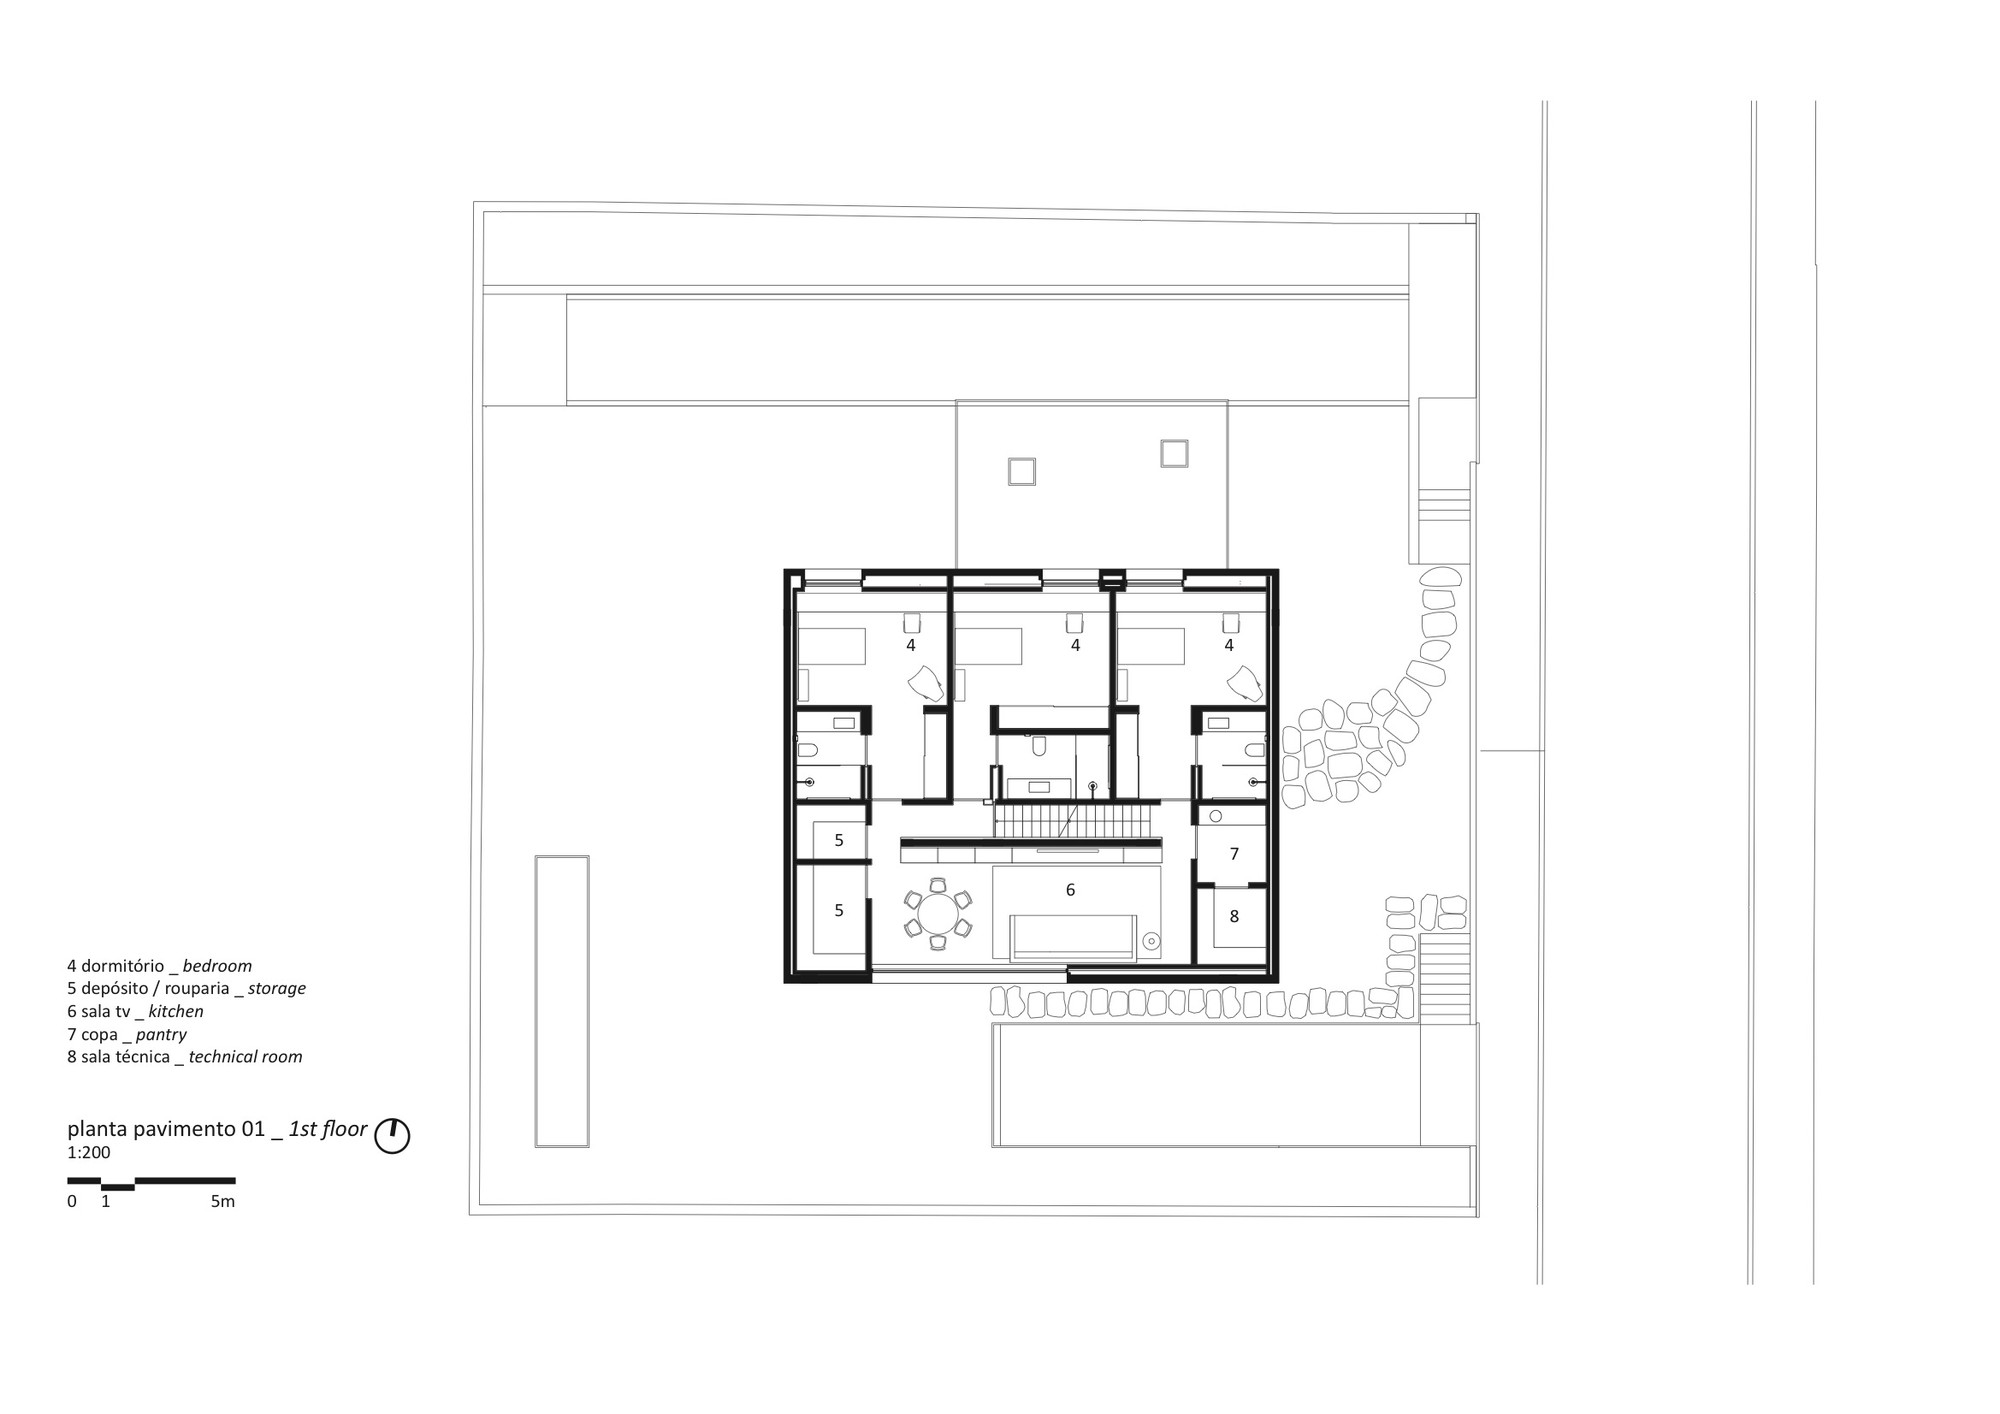 cube house rotterdam floor plan. Black Bedroom Furniture Sets. Home Design Ideas